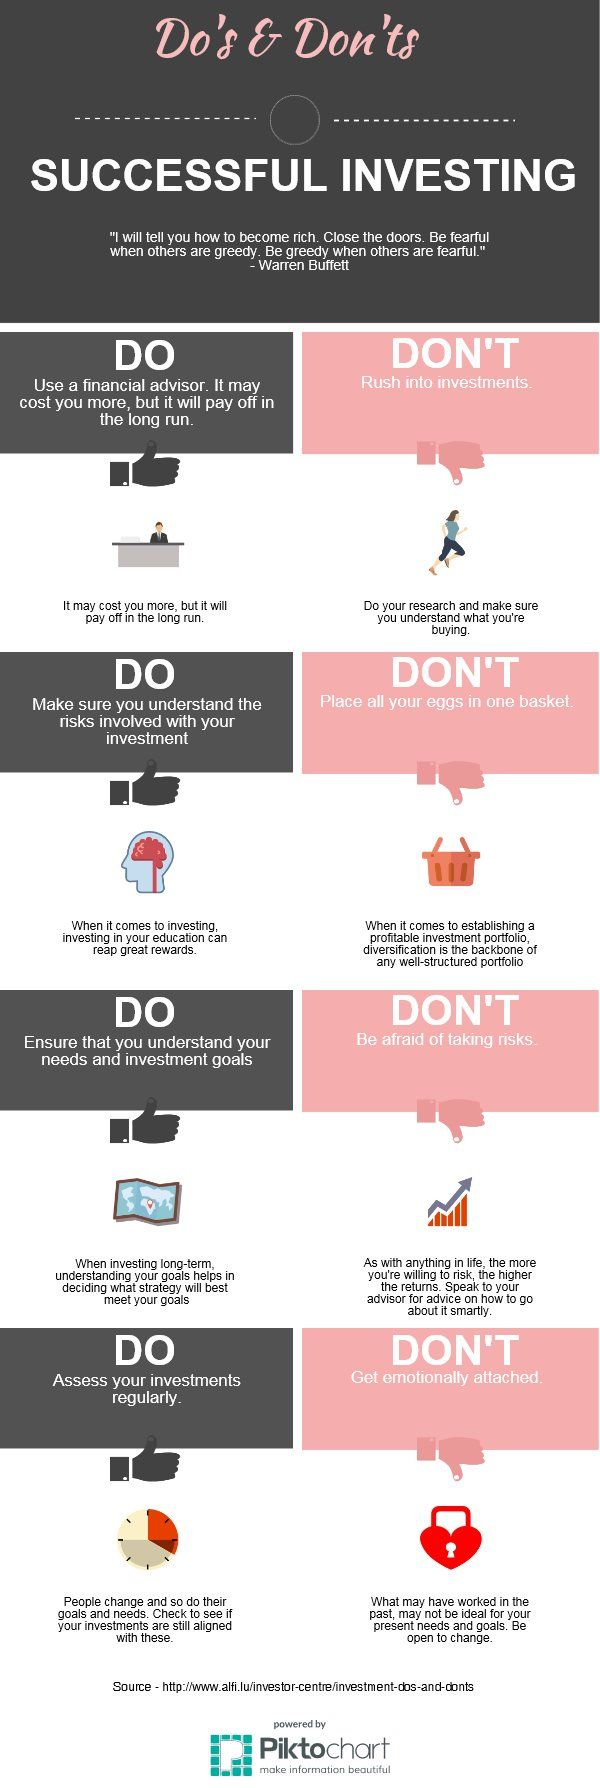 Do's and Don'ts of Good Investing | @Piktochart Infographic